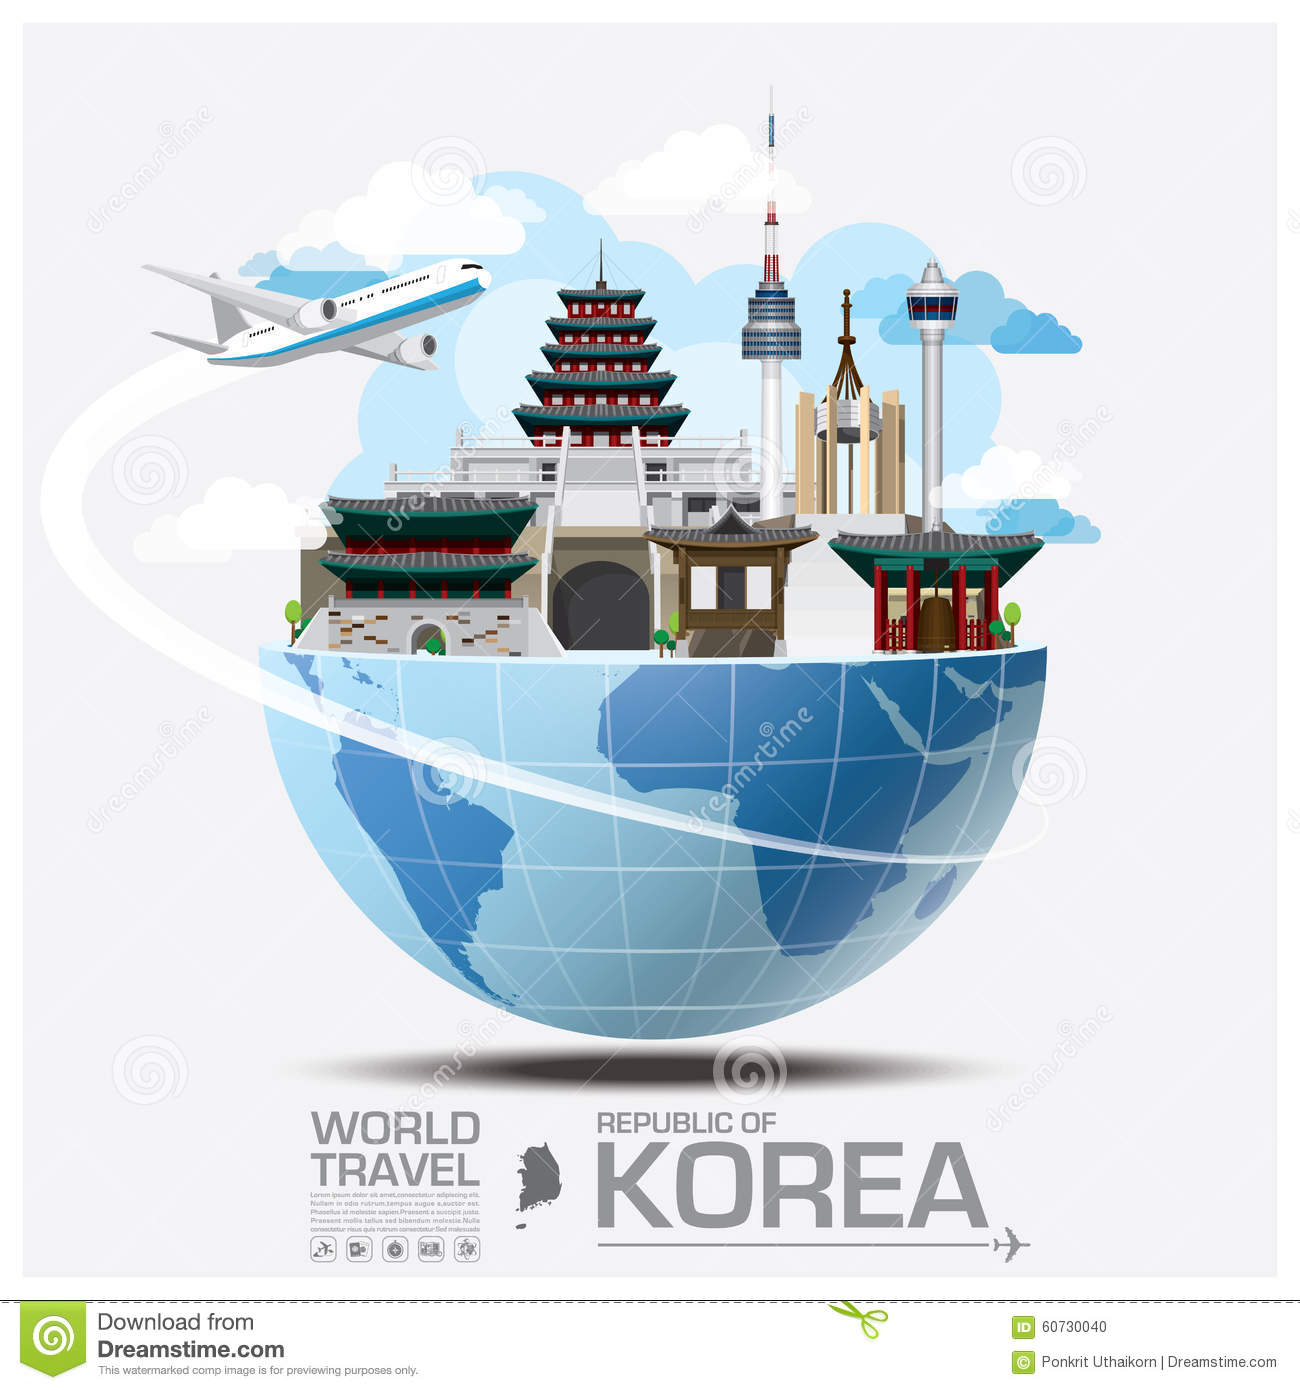 global terrorism and south korea Office of the coordinator for counterterrorism, state dept, april 30, 2003 north  korea the democratic people's republic of korea's (dprk) response to.